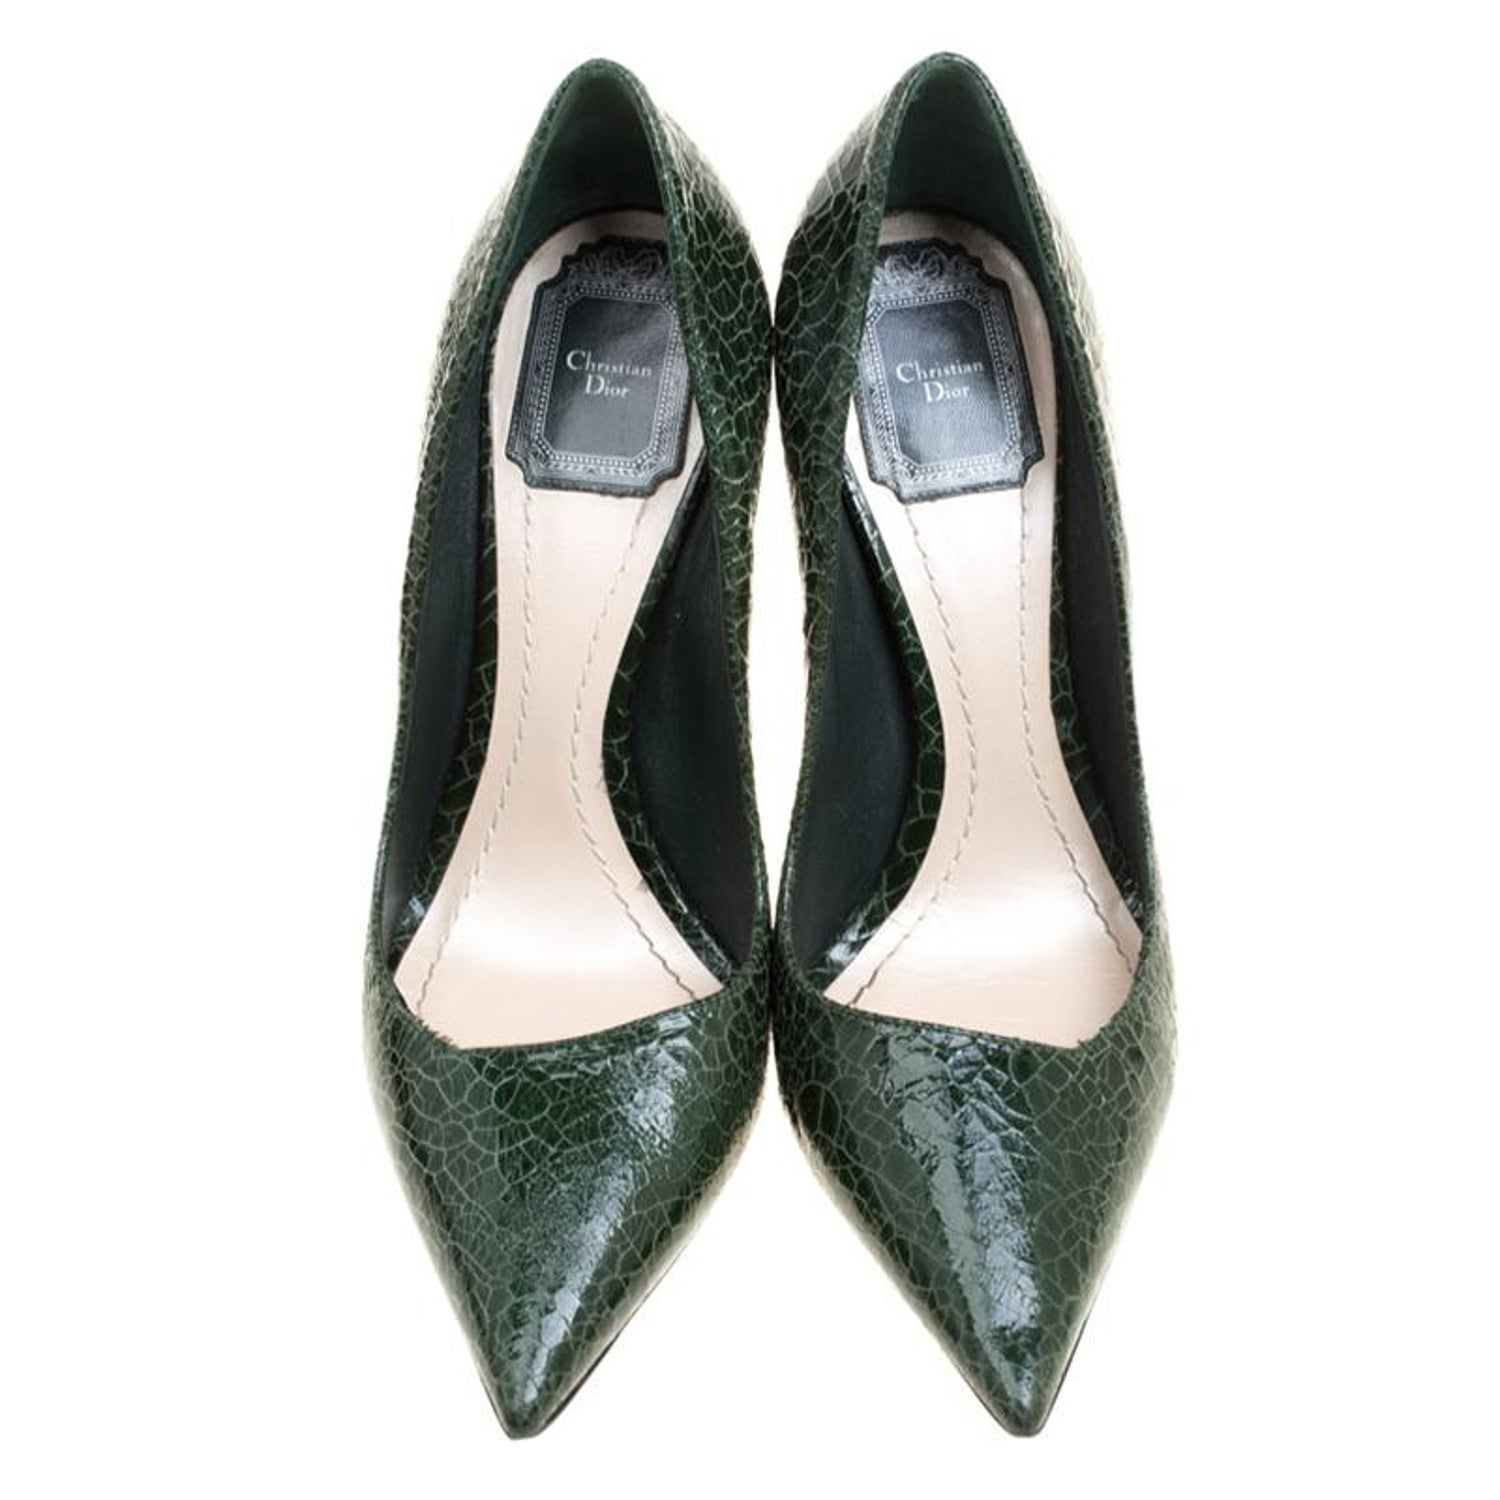 9a550f5668 Dior Green Crackled Leather Pointed Toe Pumps Size 38 For Sale at 1stdibs